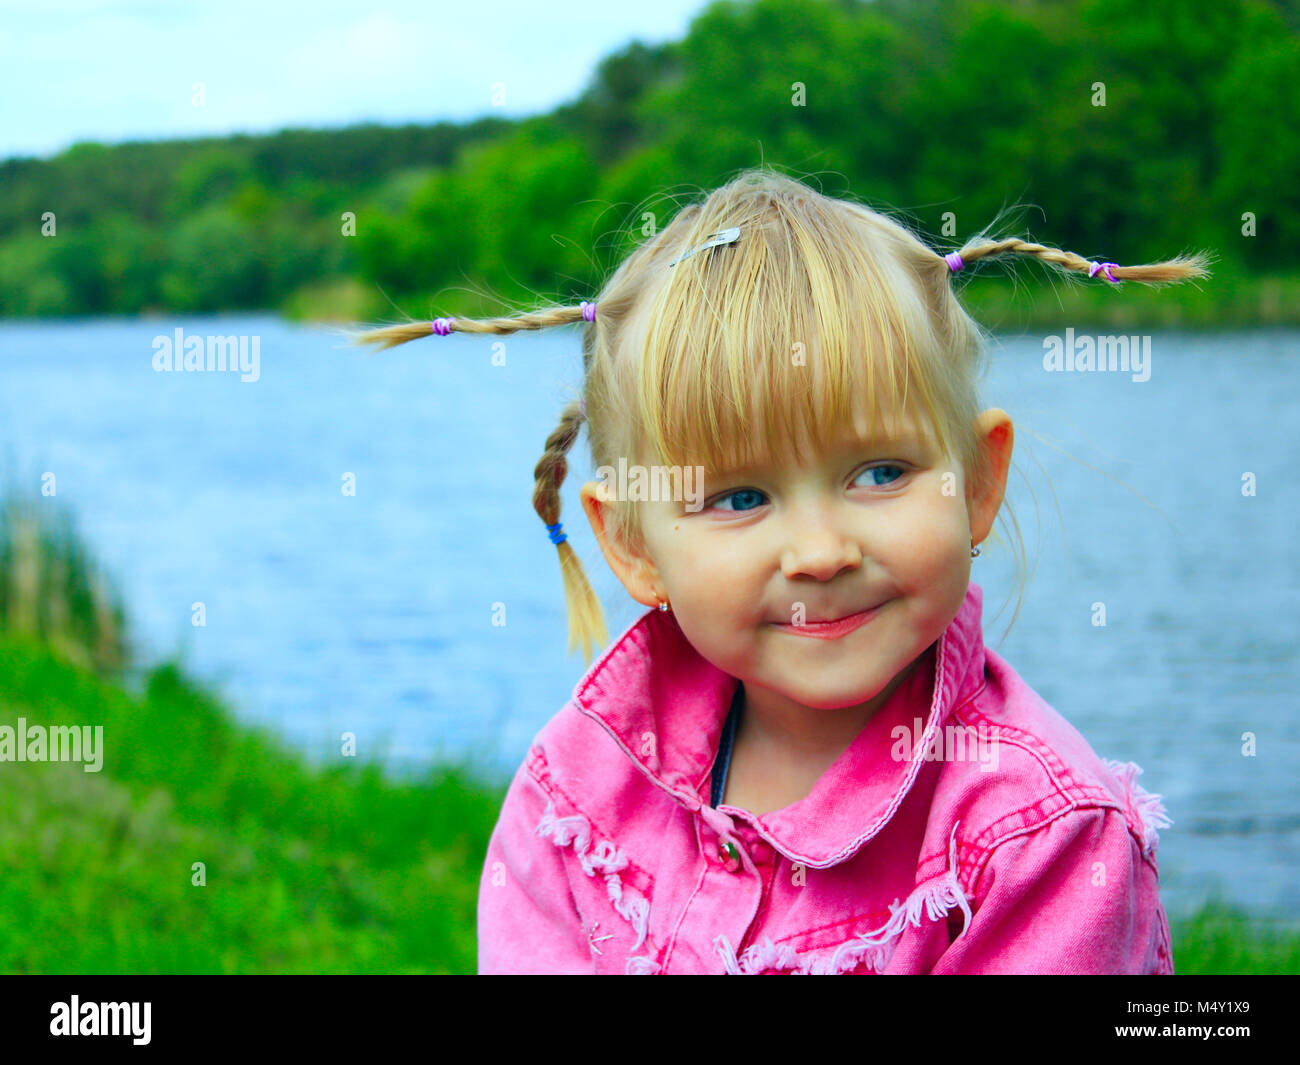 pretty smiling baby girl with nice plaits - Stock Image